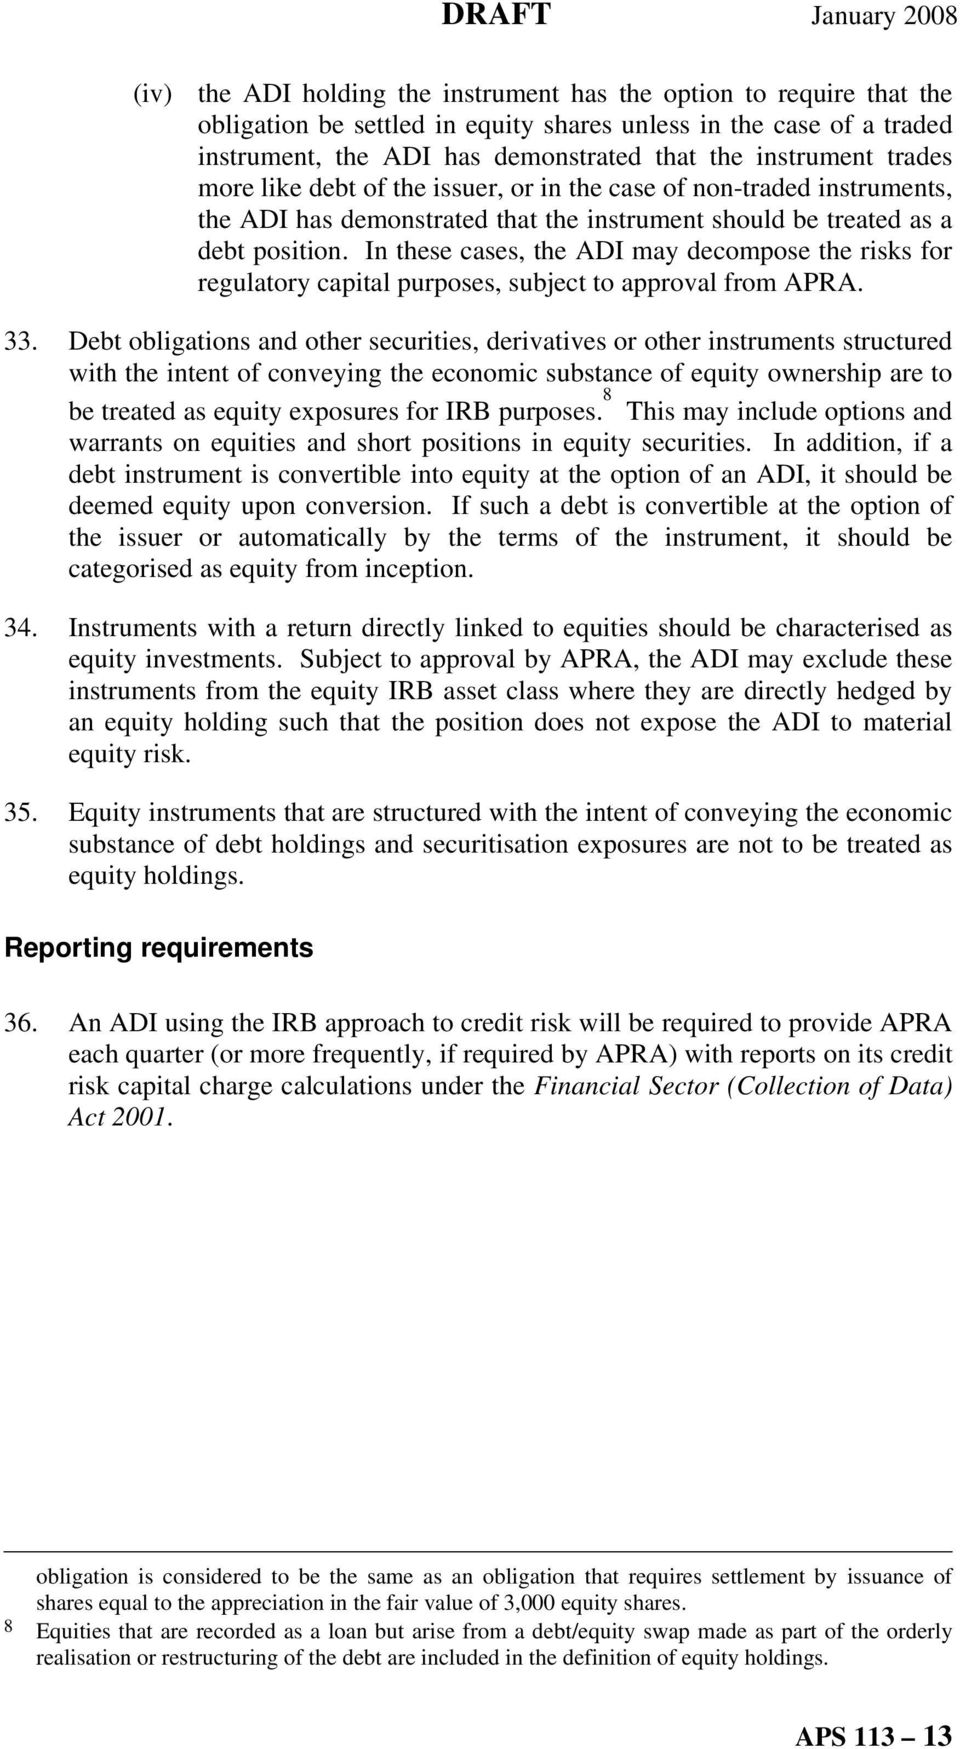 In these cases, the ADI may decompose the risks for regulatory capital purposes, subject to approval from APRA. 33.